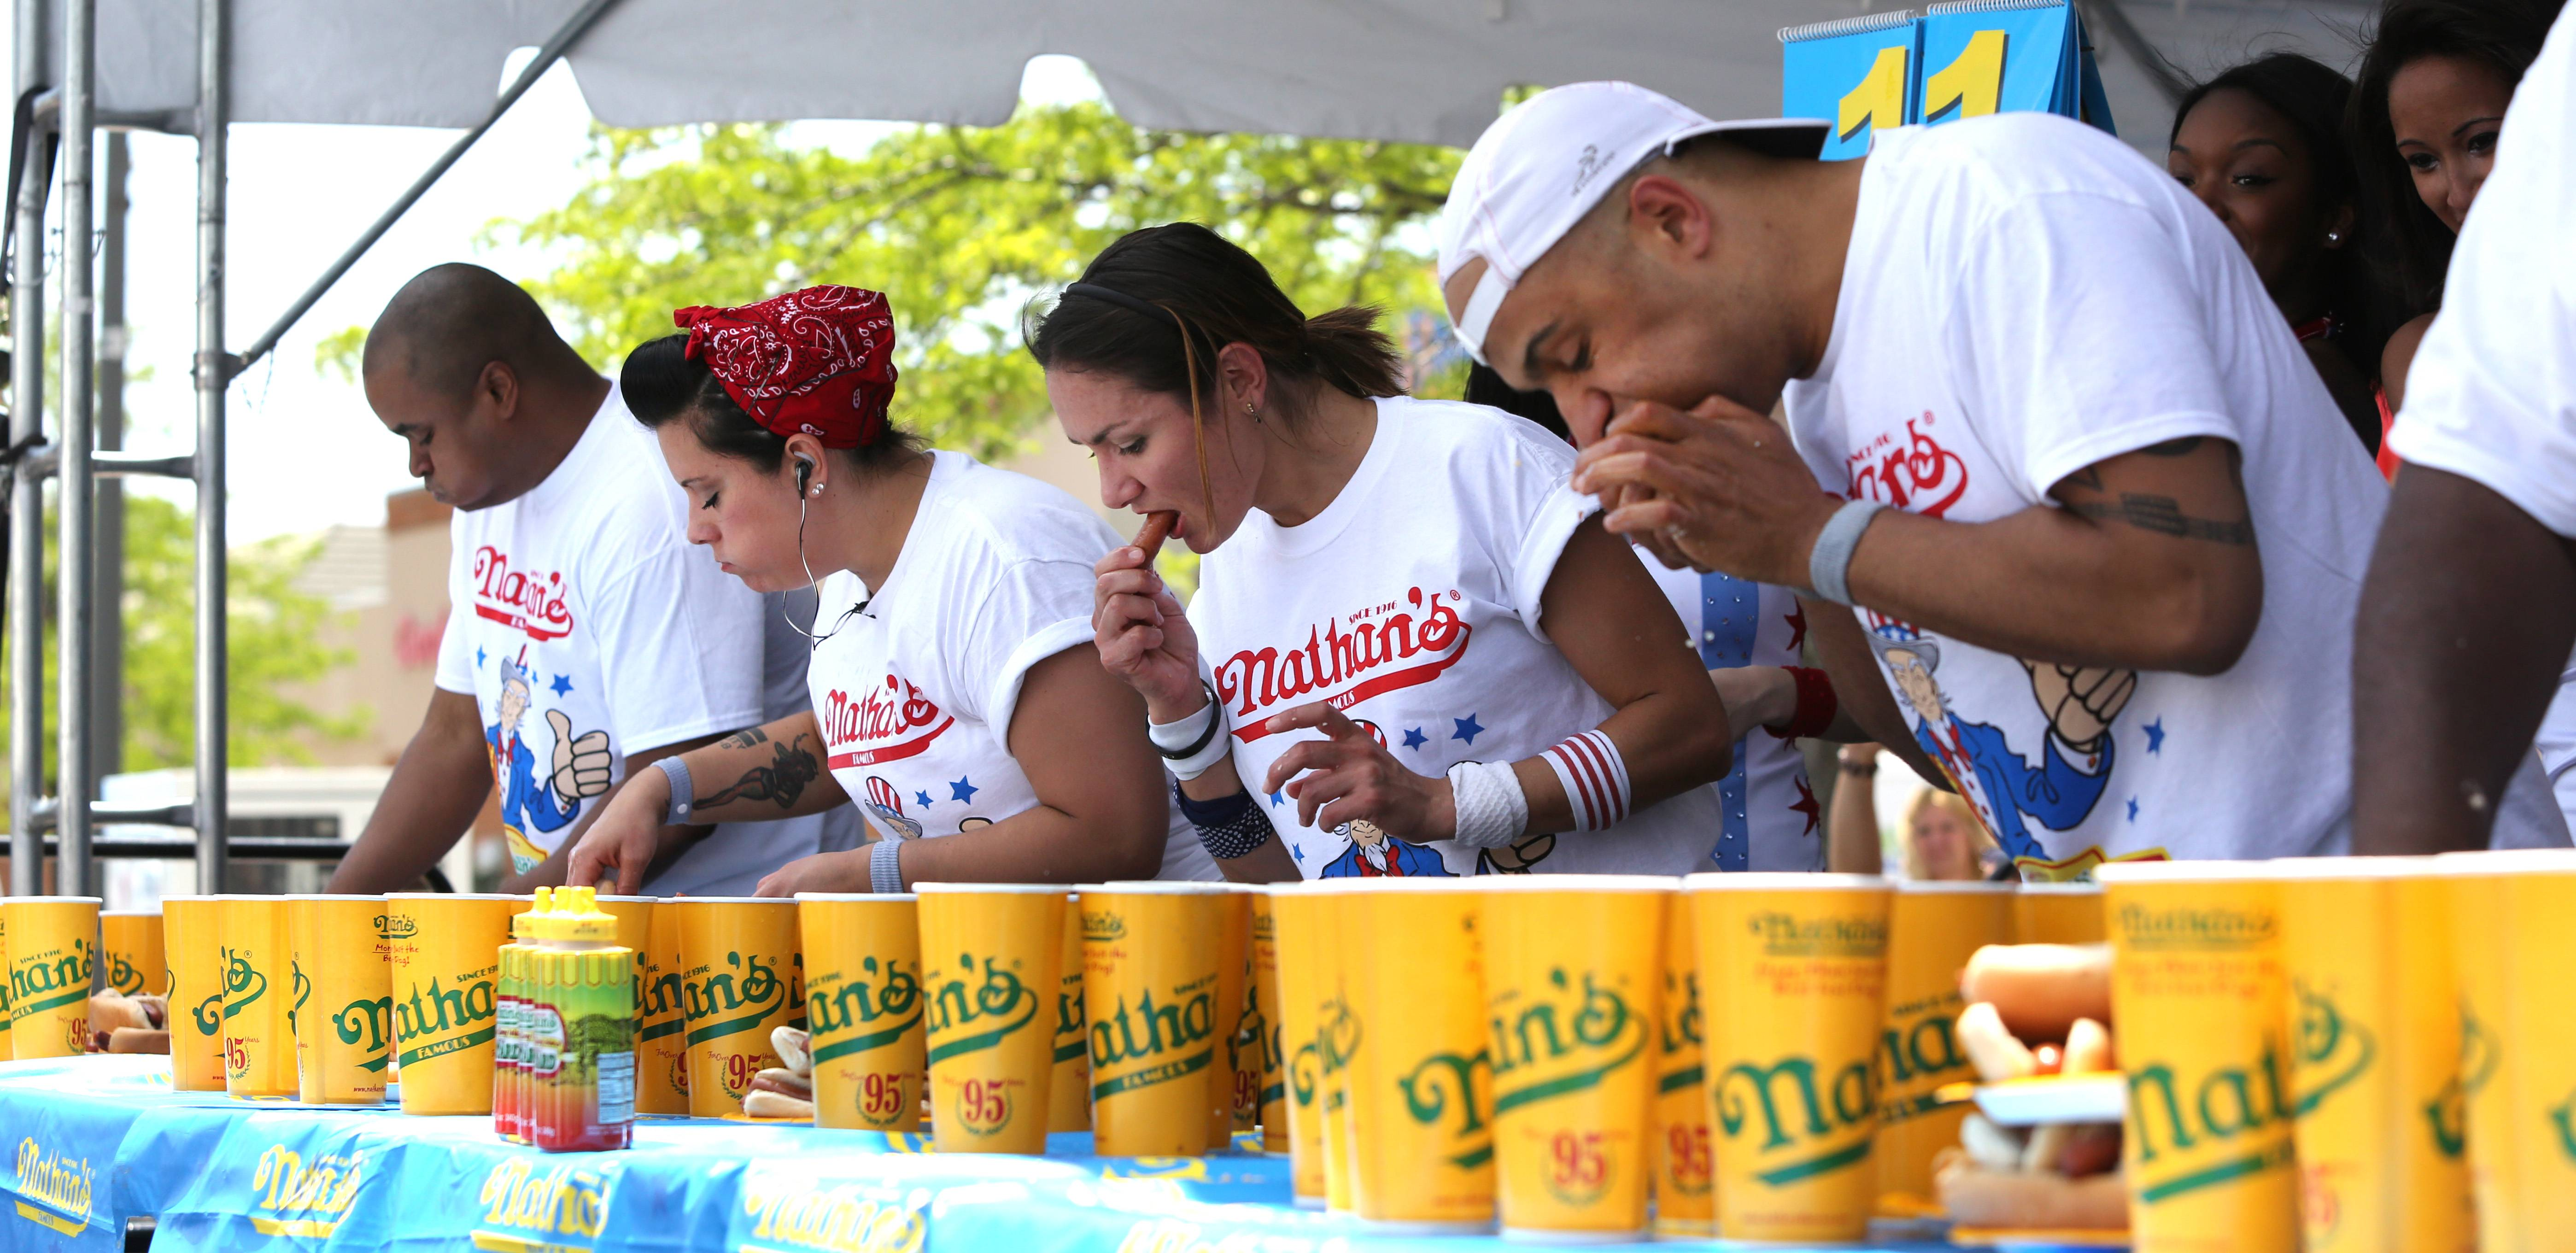 Michelle Lesco of Tucson, Arizona, third from left, is en route to a win during a hot dog-eating contest in the Bloomingdale Kmart parking lot. She ate 28½ hot dogs. Yasir Salem, right, finished third with 26 hot dogs.